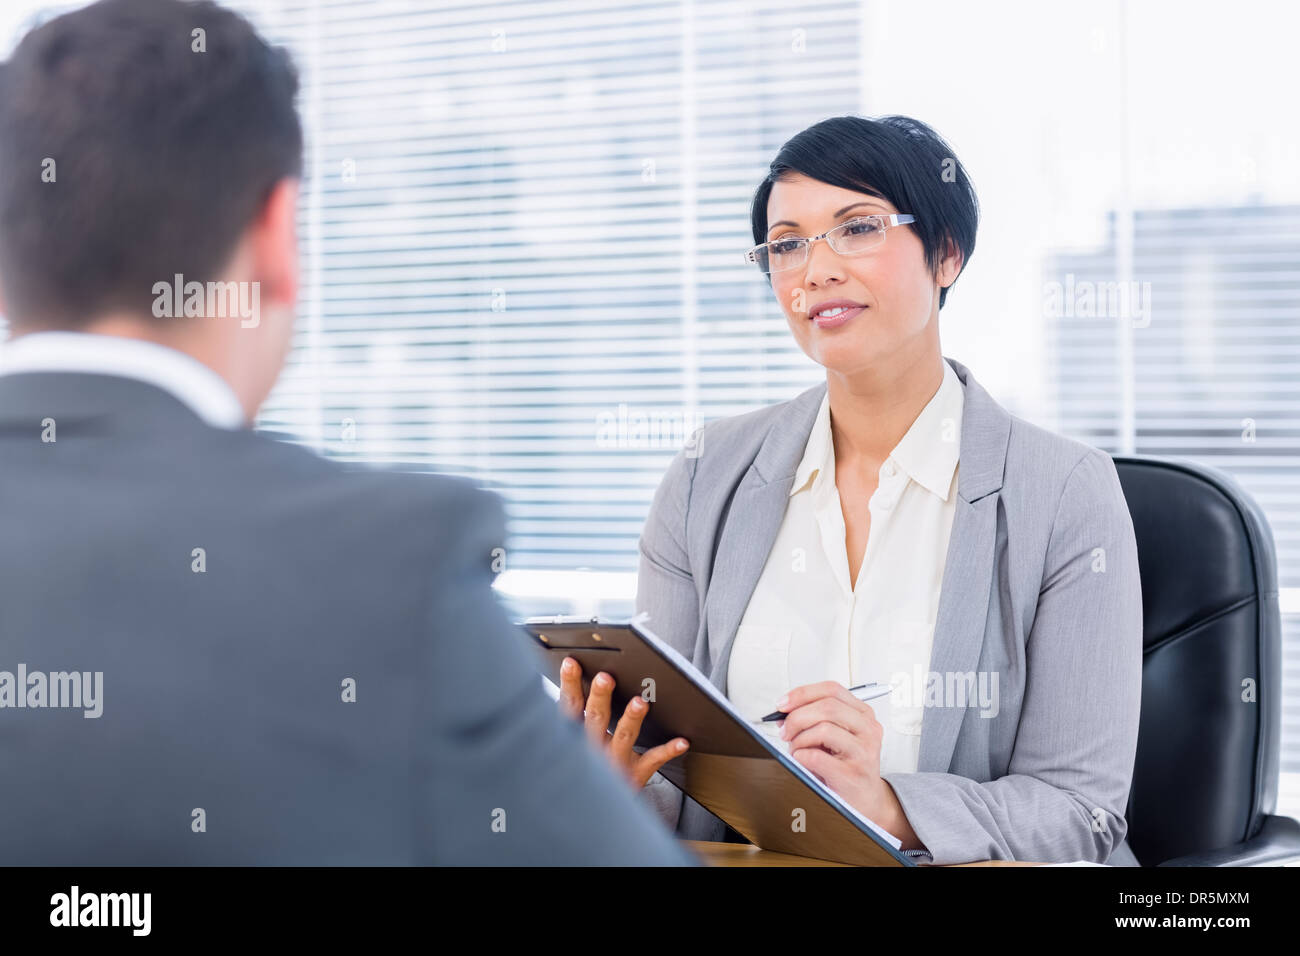 Recruiter checking the candidate during a job interview - Stock Image